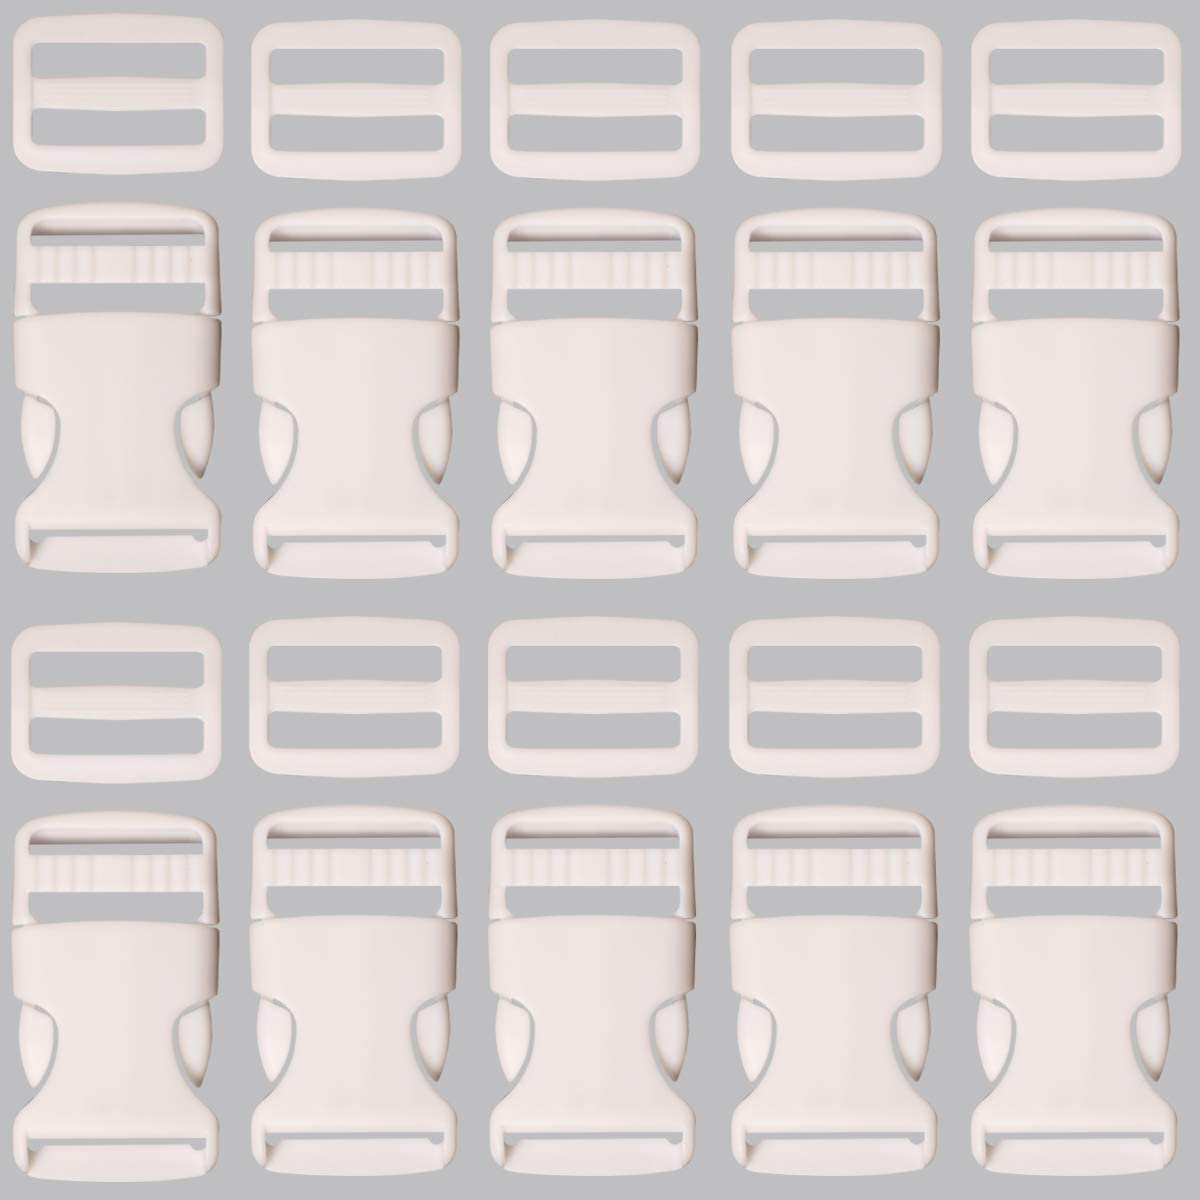 Dog Collor Strap Webbing Hardware CK-027 Plastic Buckle 5 Pieces 12 inches Release Buckles